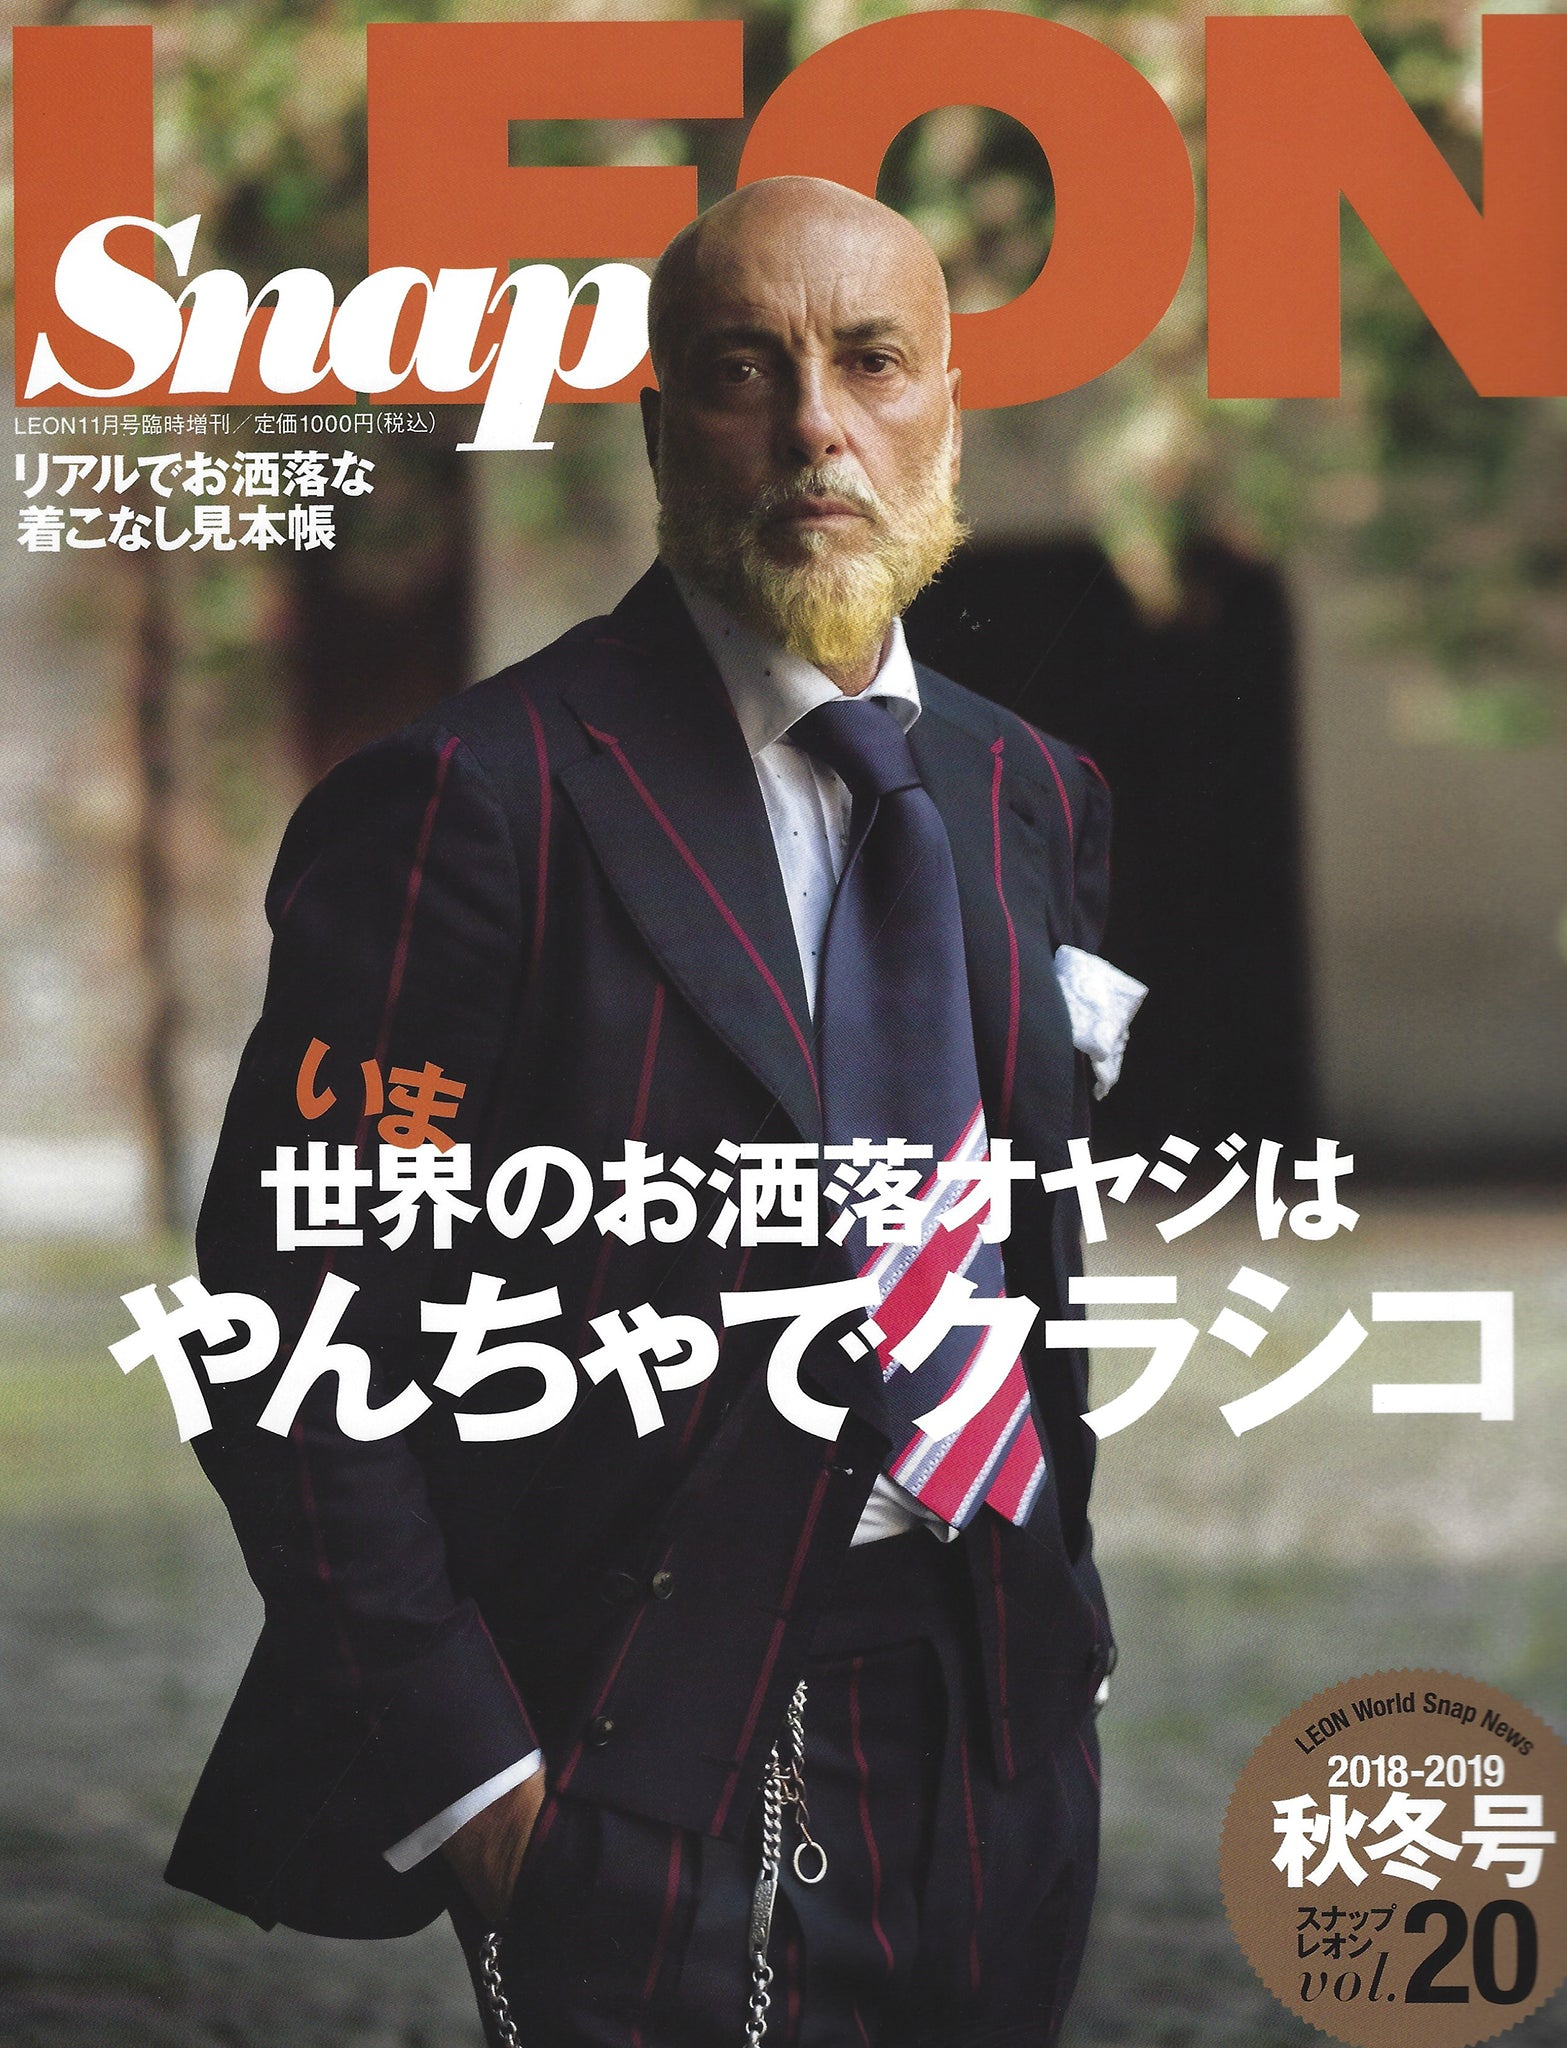 Blluemade Press: Leon  Special Edition Vol. 20 Snap Winter October 2018